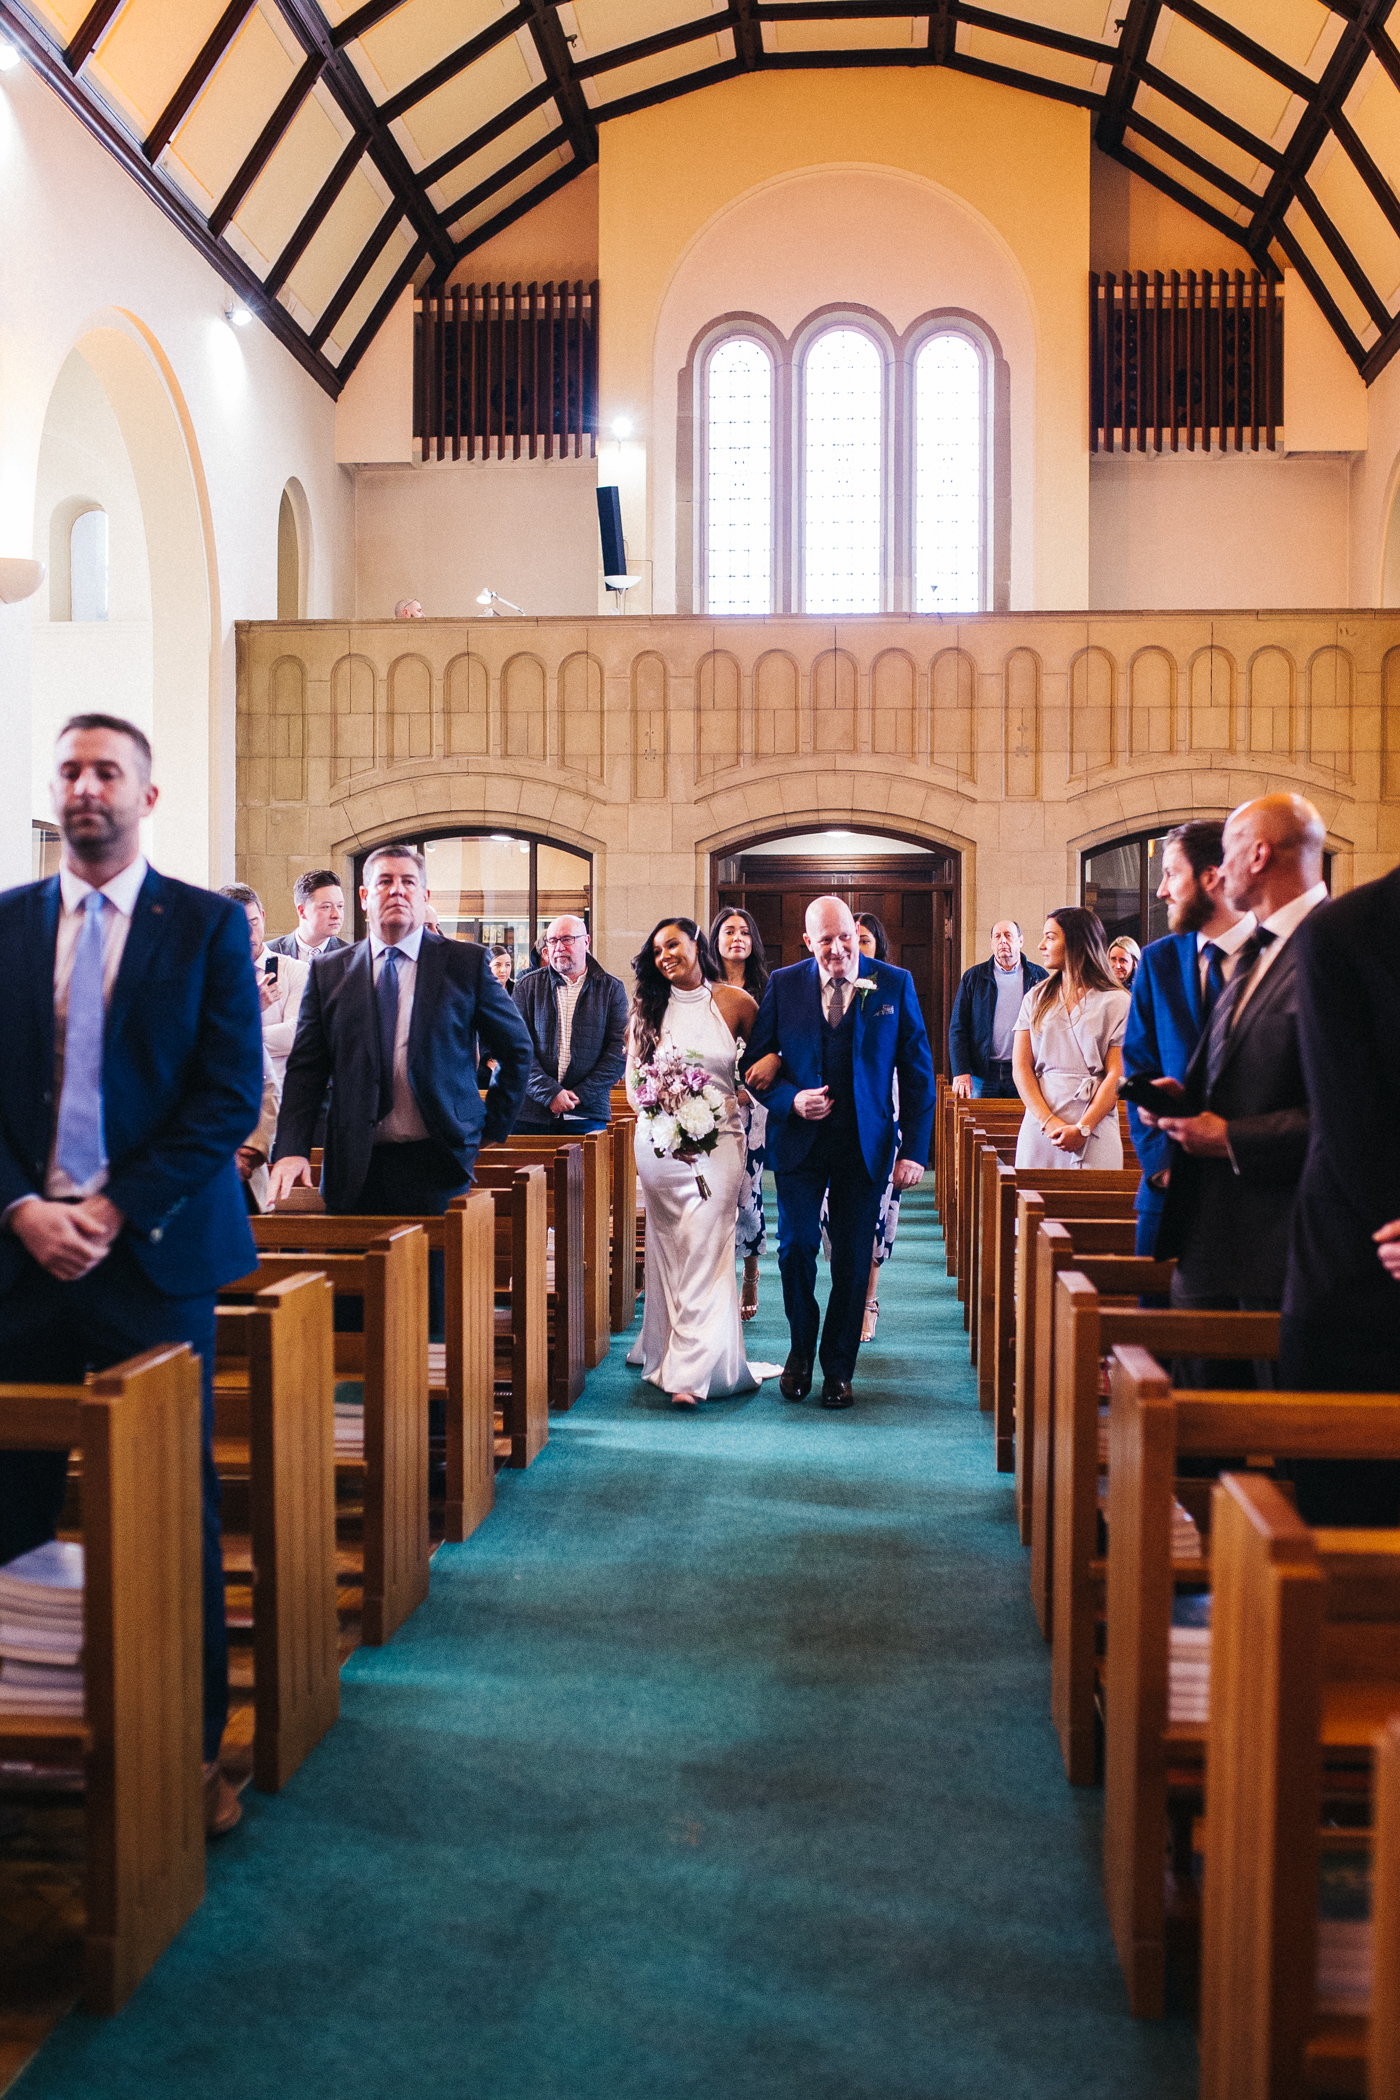 the bride and her dad walk down the aisle. relaxed teesside middlesbrough wedding photographer, wedding at home